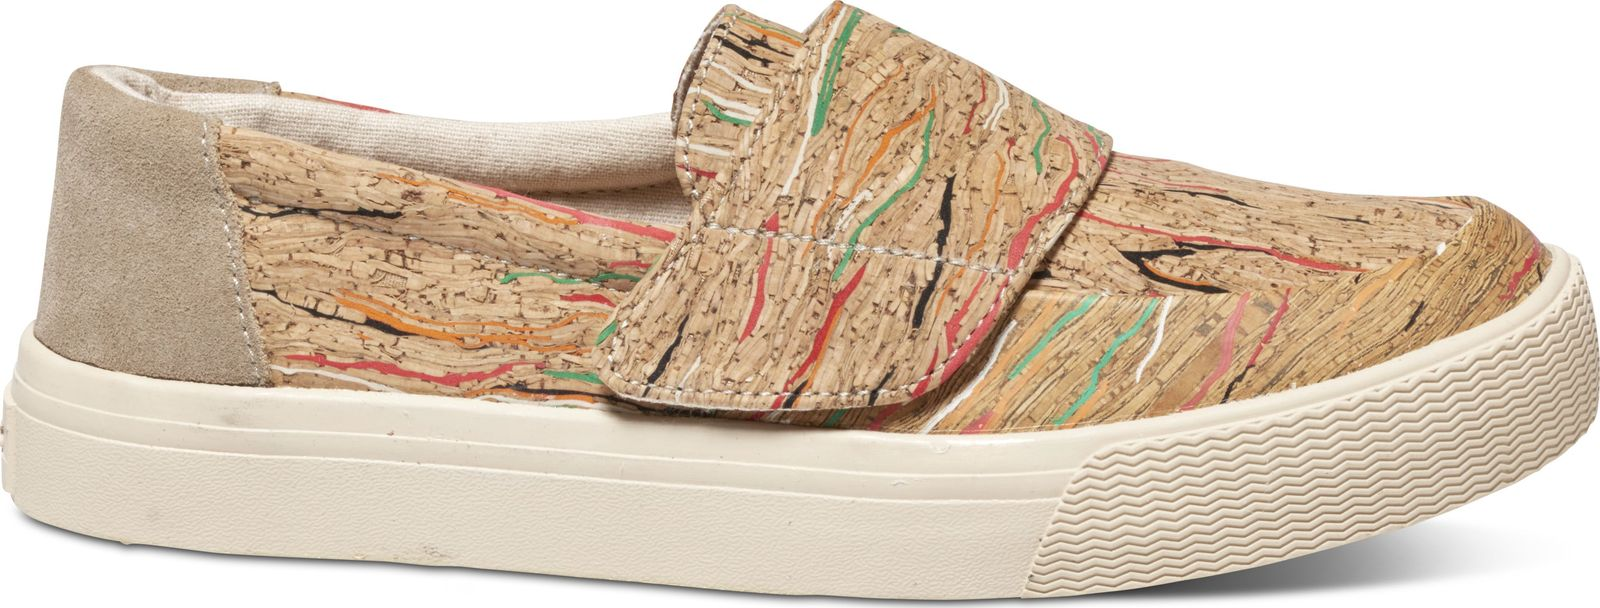 TOMS Cork Women's Altair Slipon Multi 40